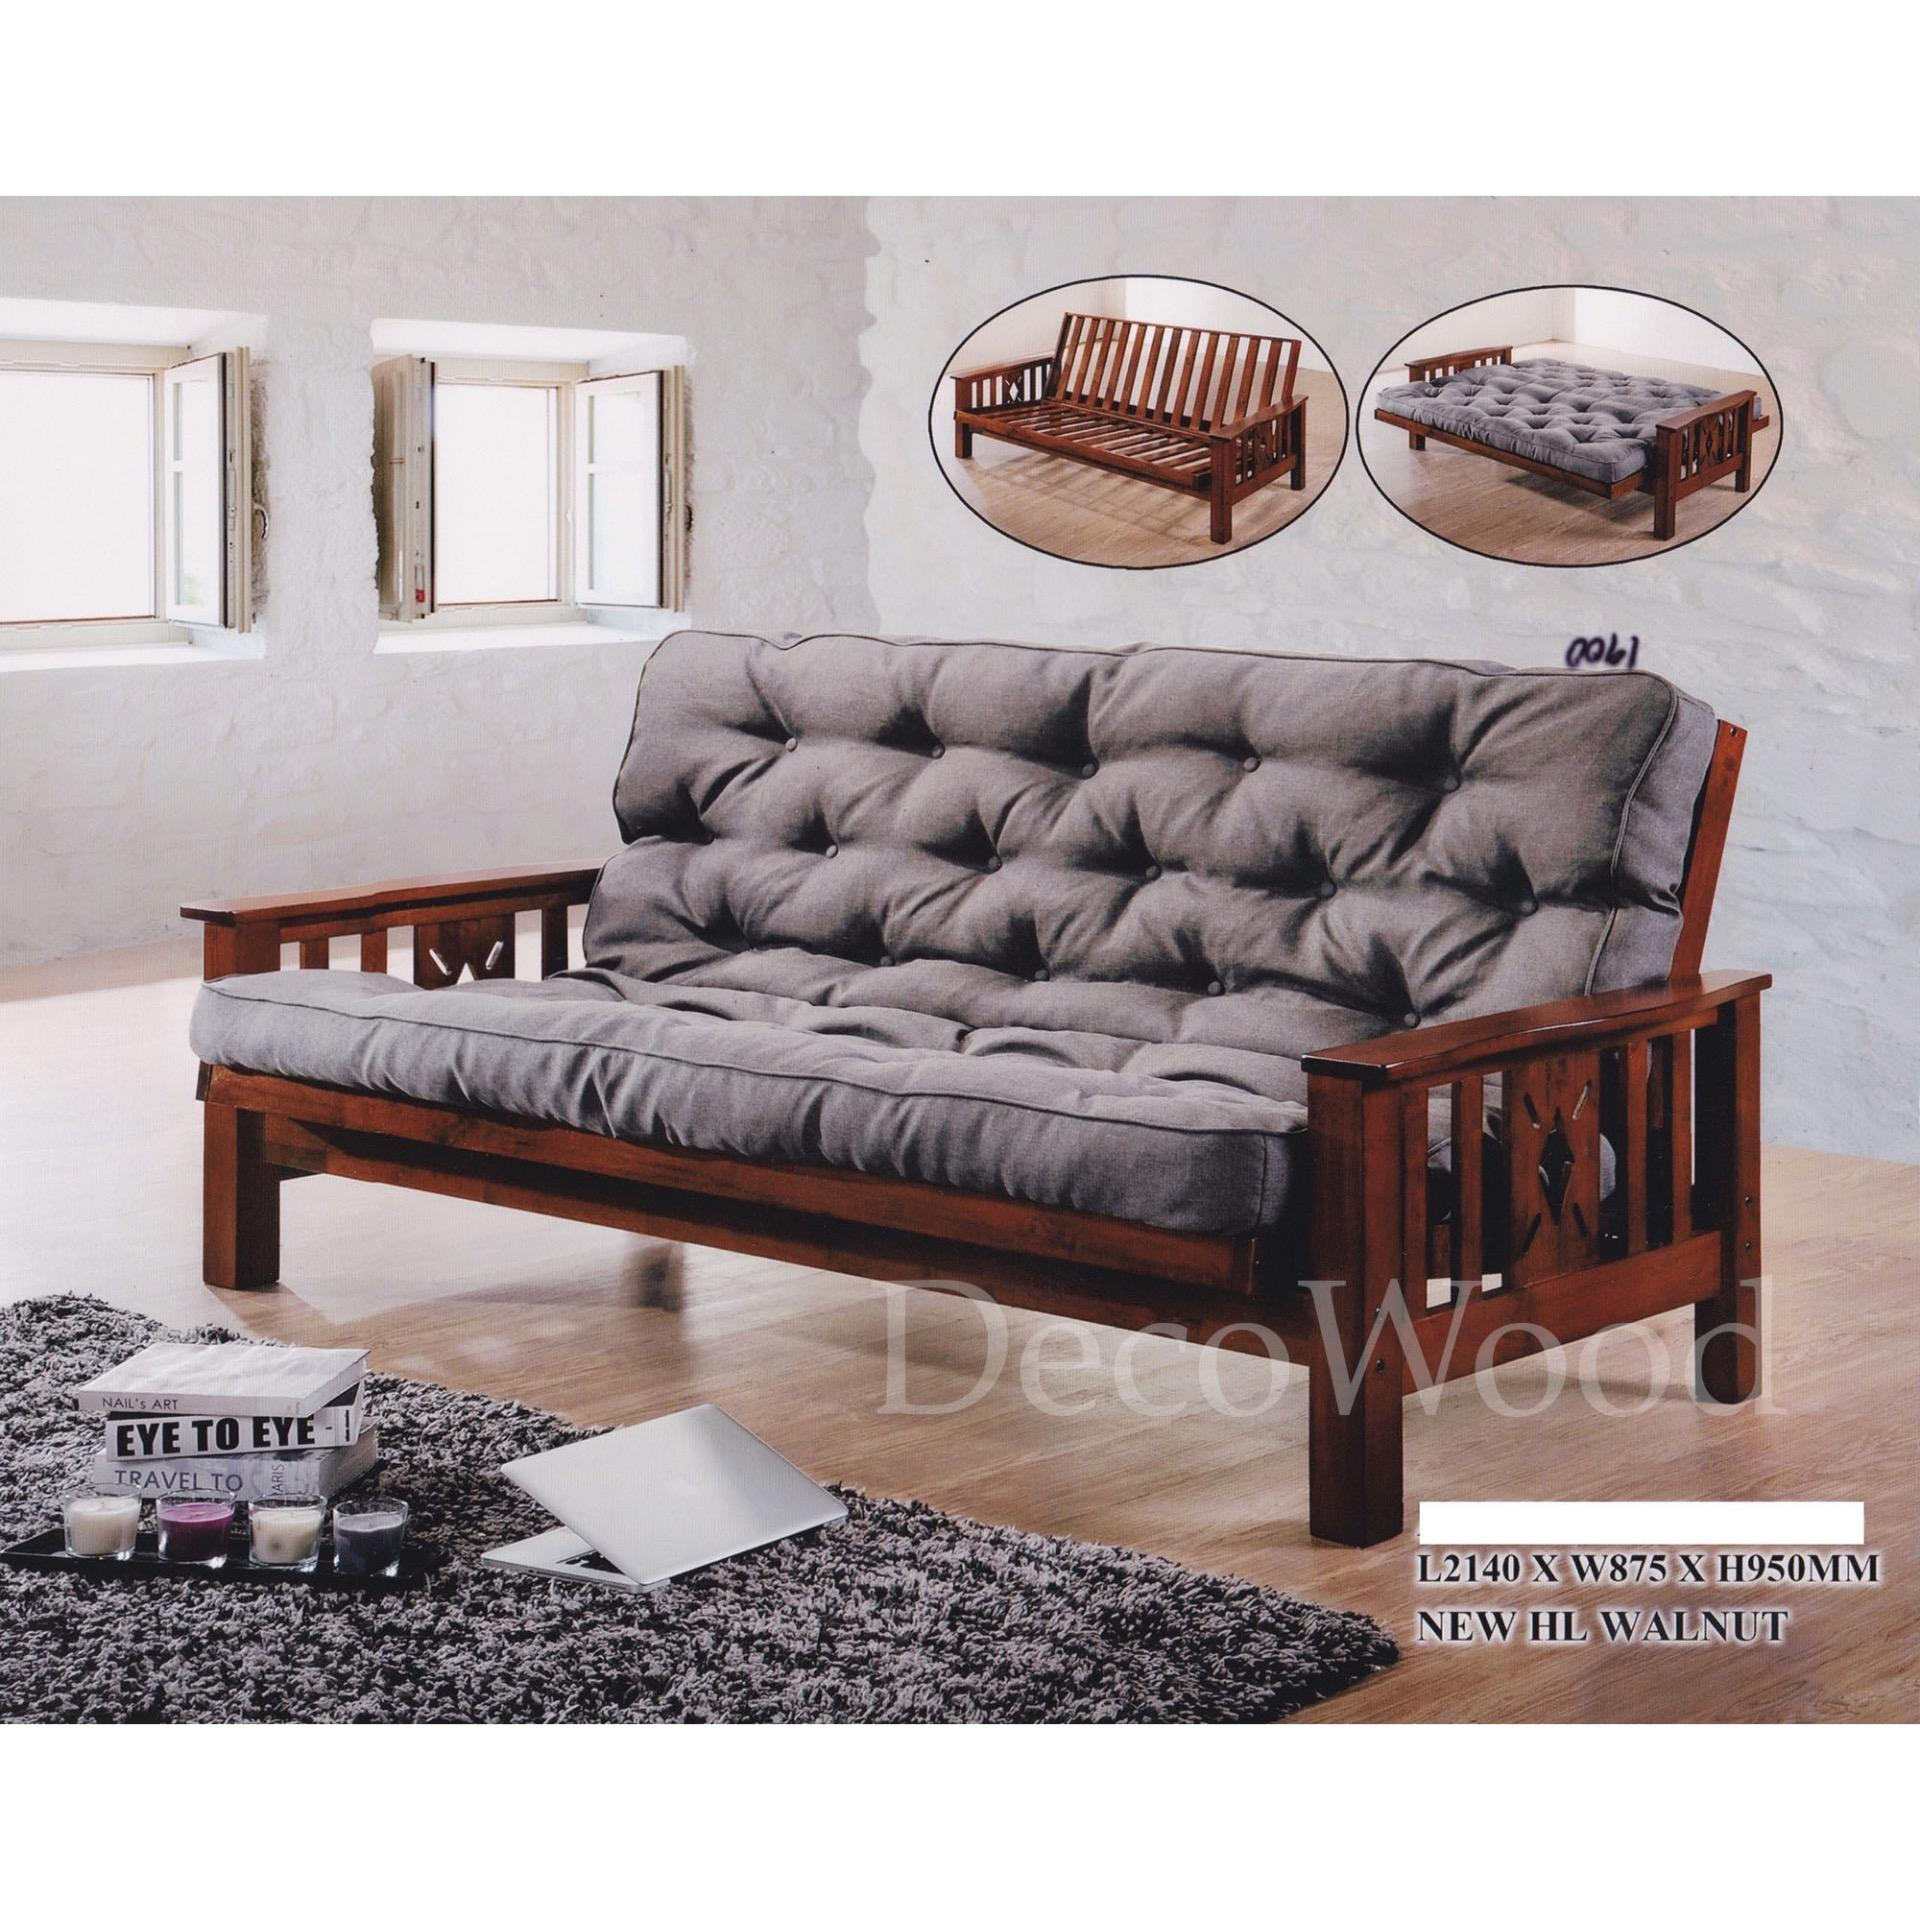 Solid Wood Fabric Sofa Bed Lounge Chair Bed Day Bed Grey Colour